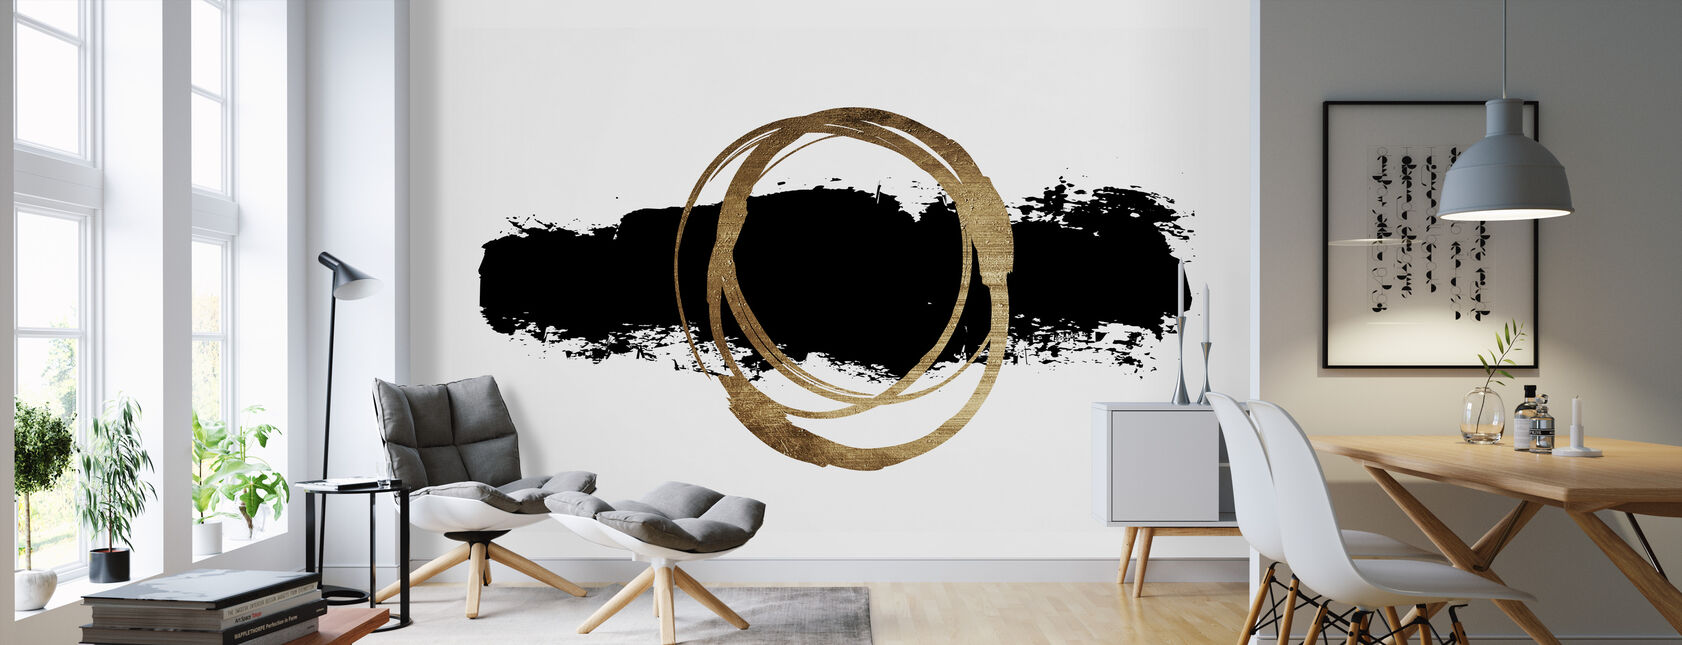 Circle And Line - Wallpaper - Living Room